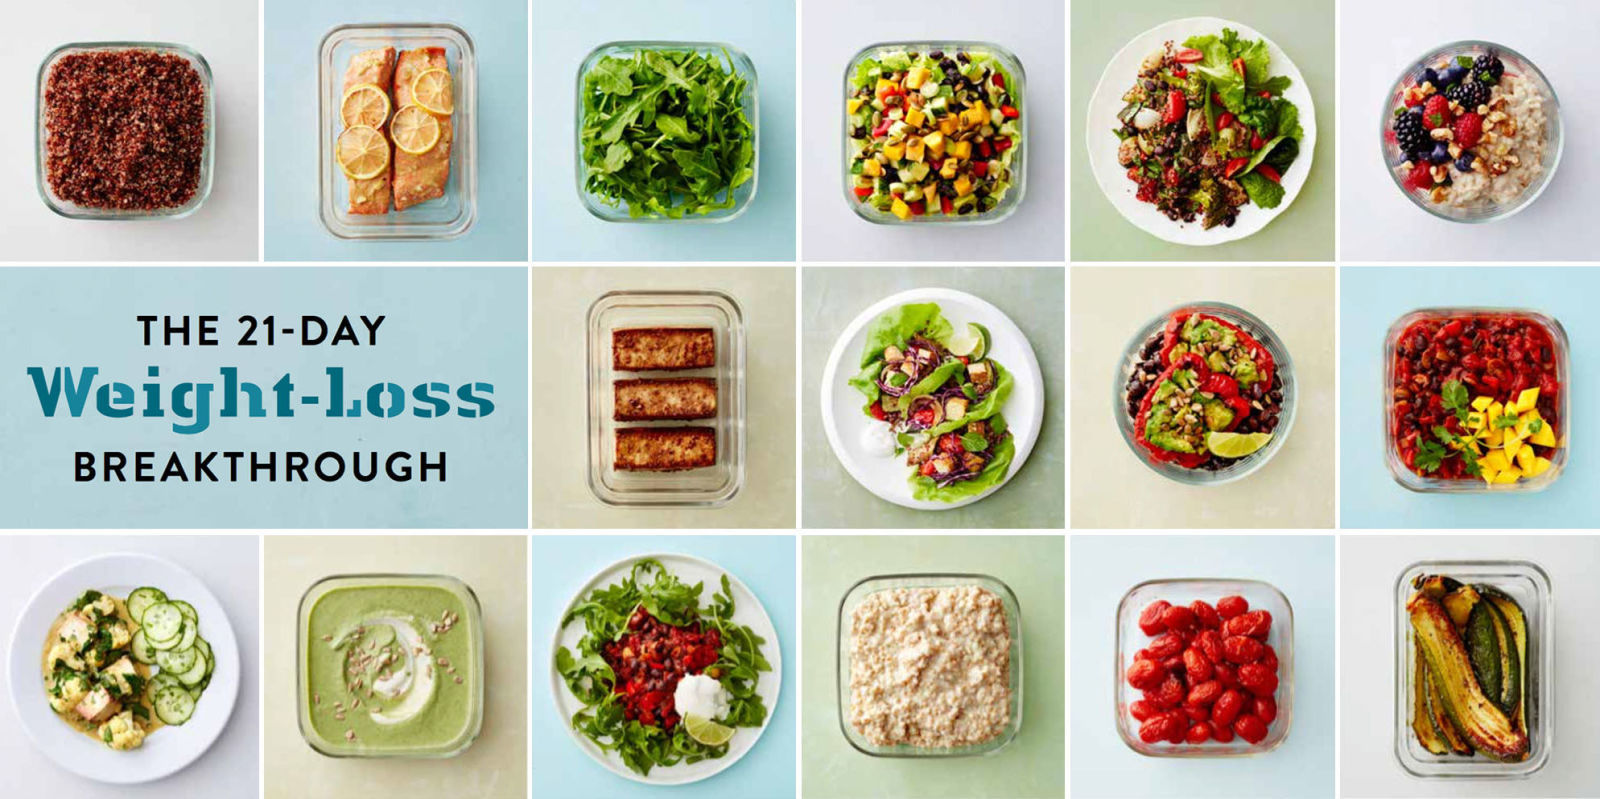 The 21-Day Weight-Loss Breakthrough - Dr. Oz's Meal Prep ...